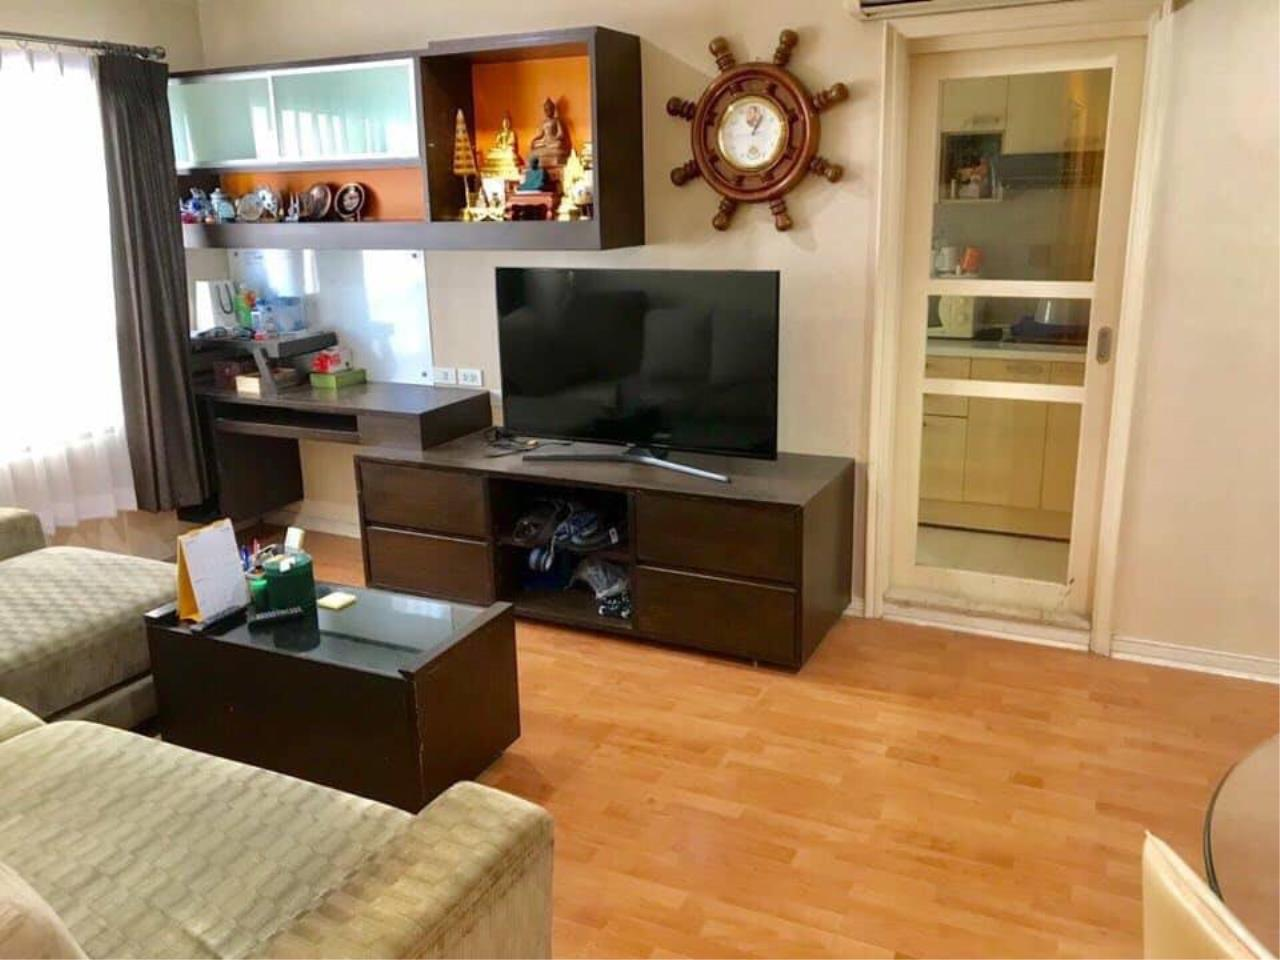 First Choice Properties by Su Agent Agency's KP036 LUMPINI VILLE PHAHOL – SUTTHISARN for sale 5.85M. 2bedroom. 69sq.m. 3